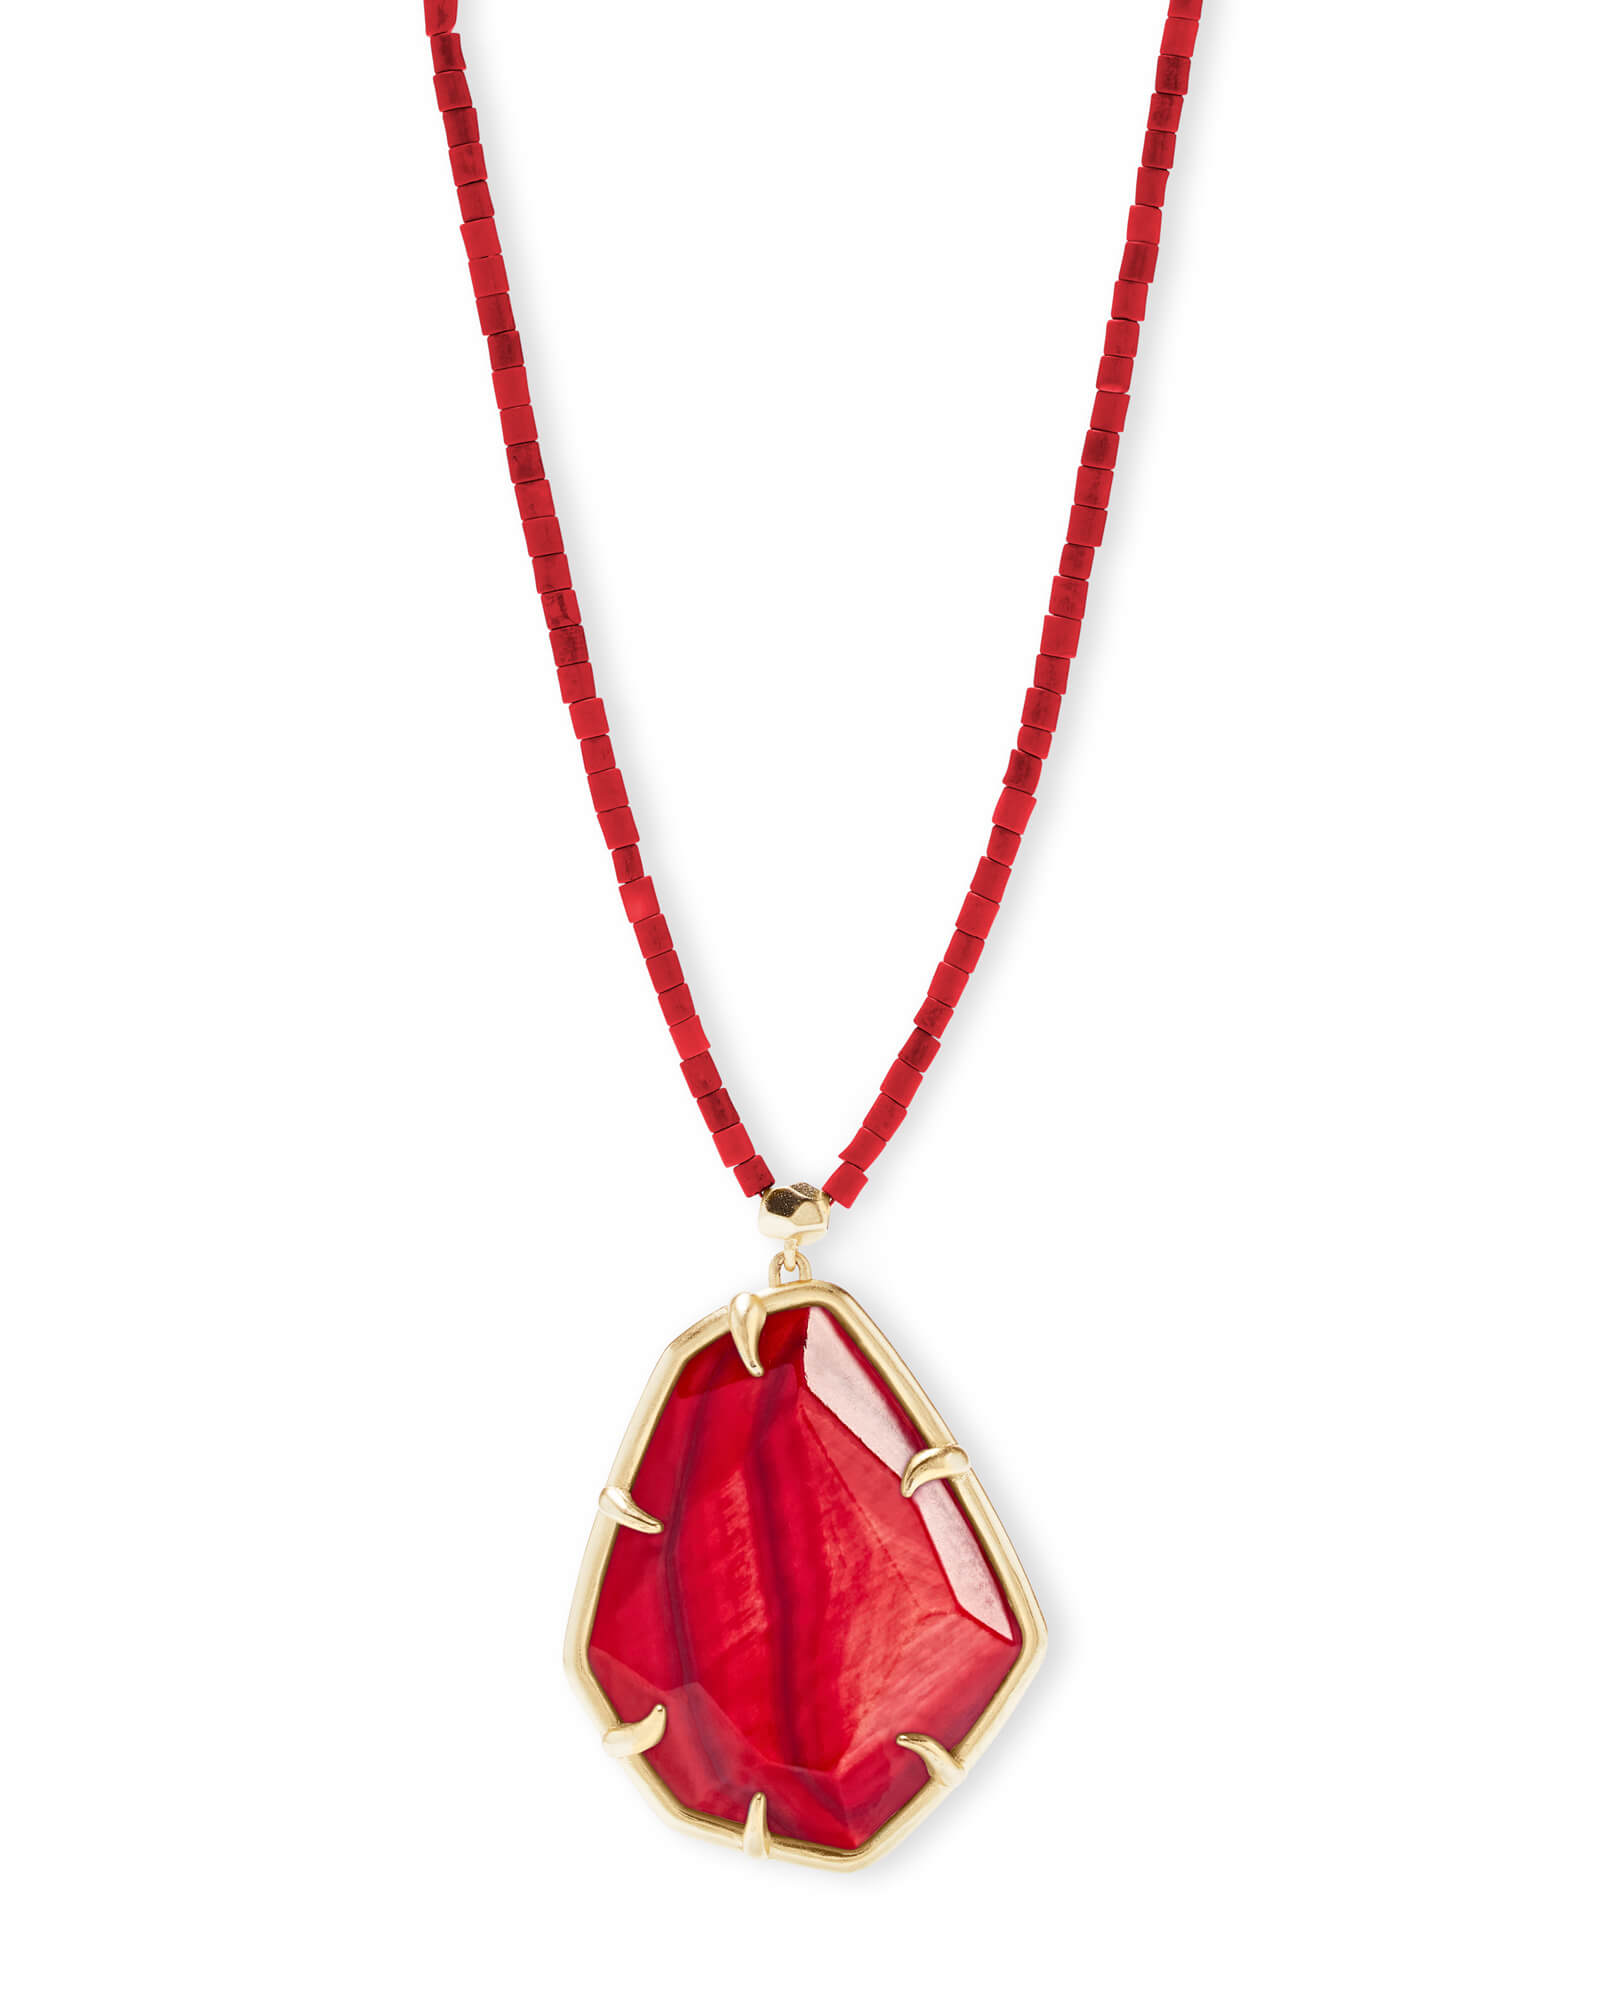 Beatrix Gold Long Pendant Necklace In Red Mother of Pearl